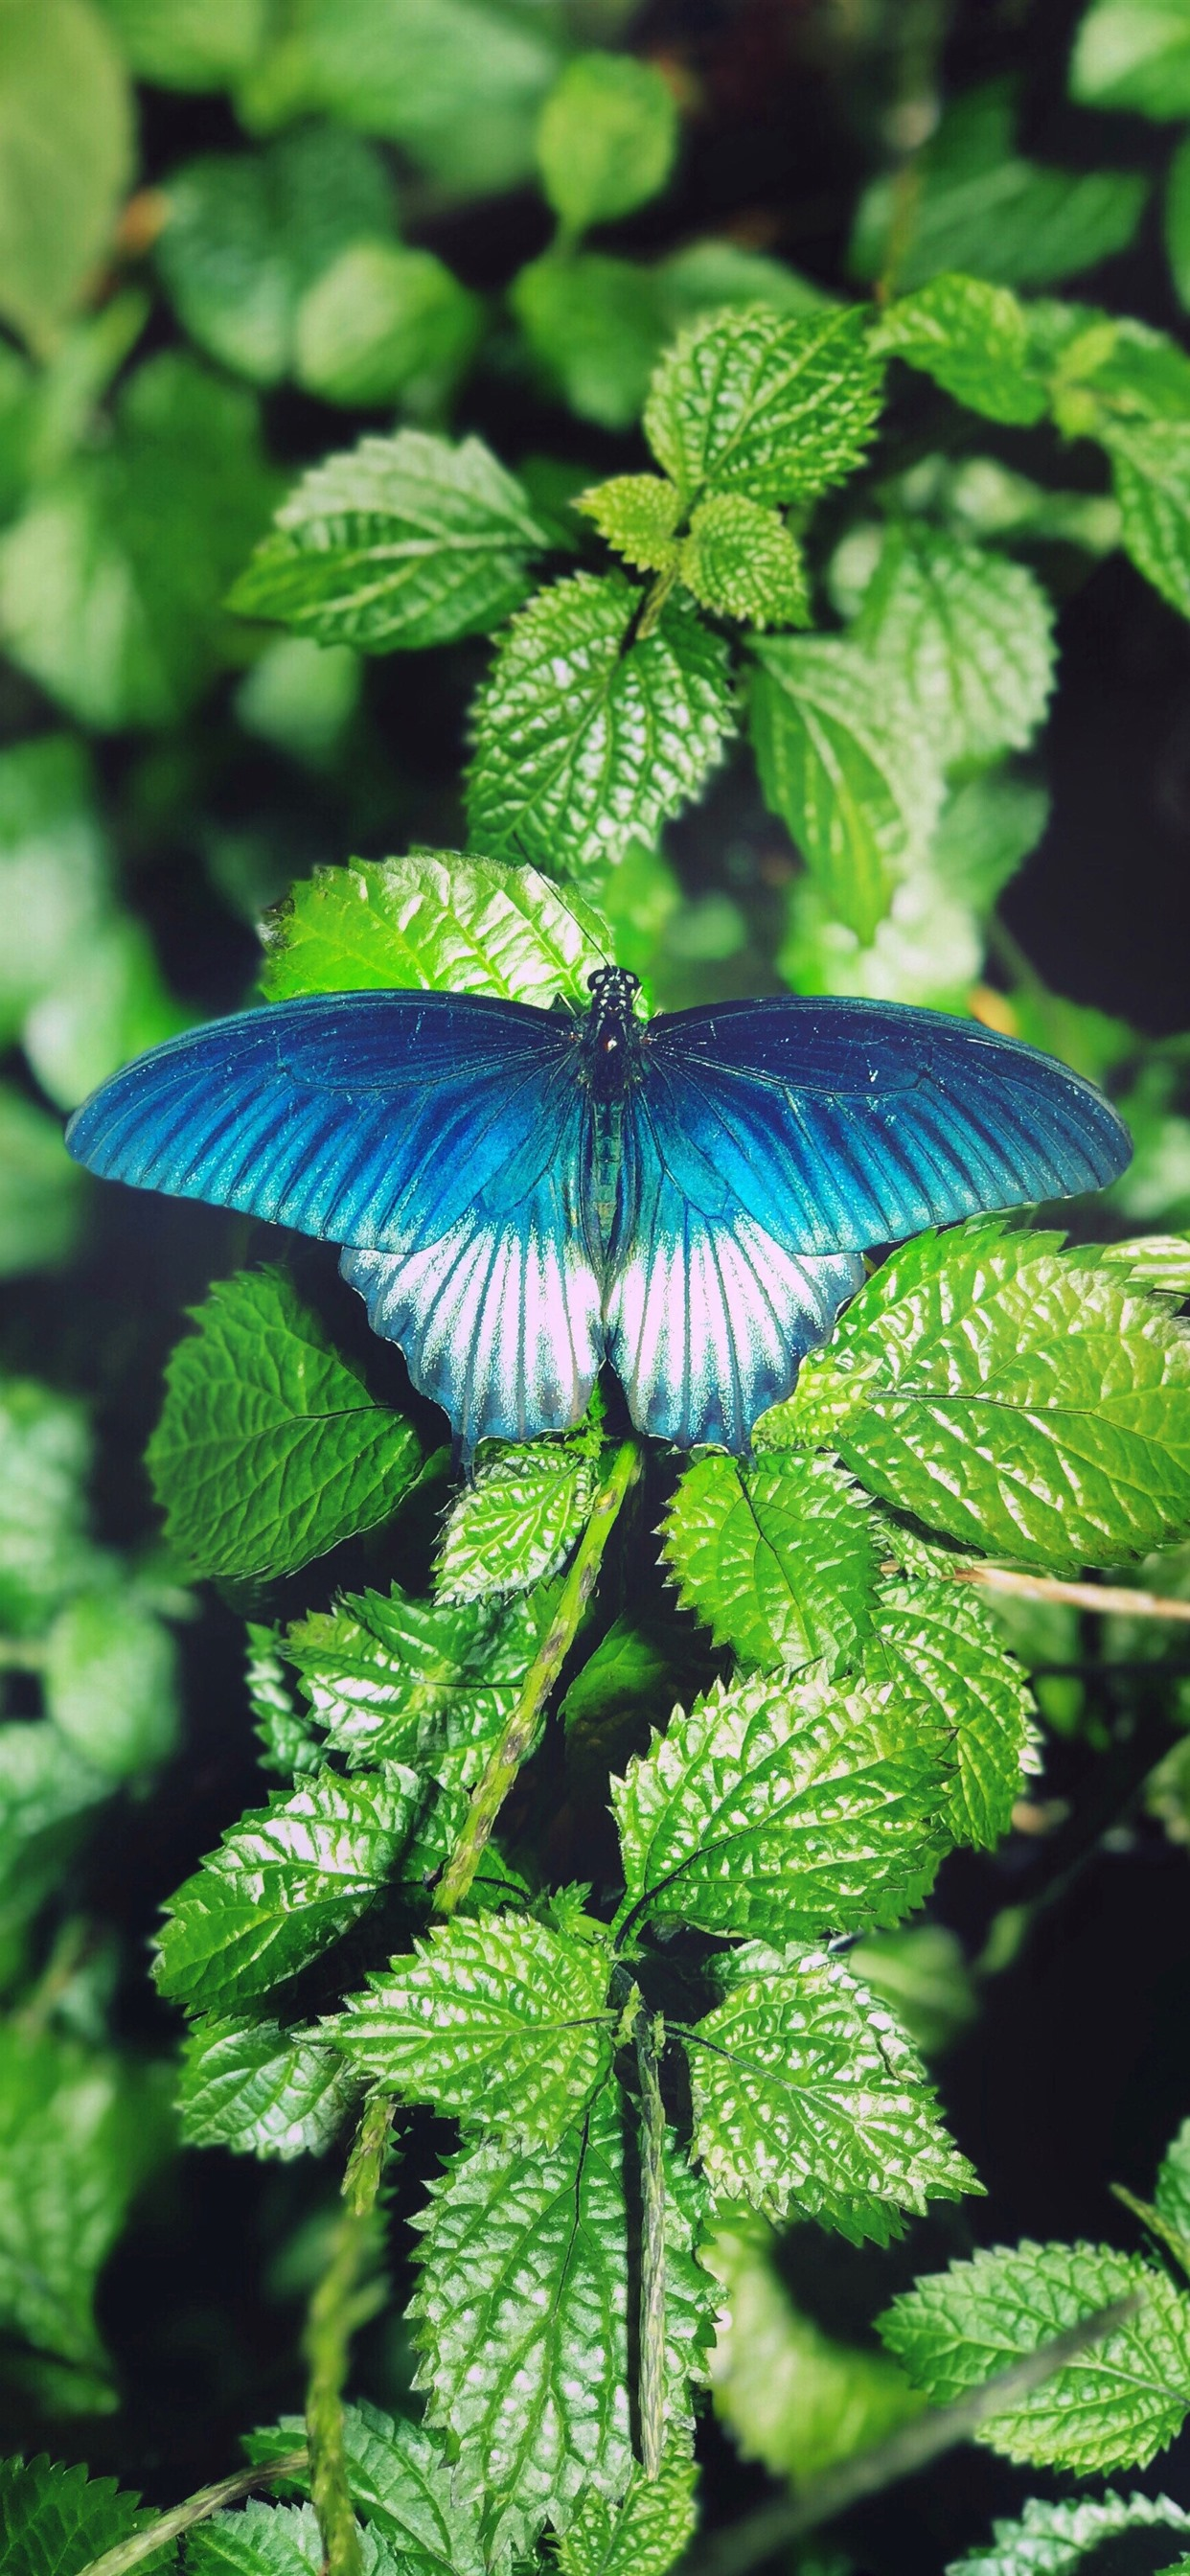 Green Leaves Blue Butterfly 1242x2688 Iphone 11 Pro Xs Max Wallpaper Background Picture Image